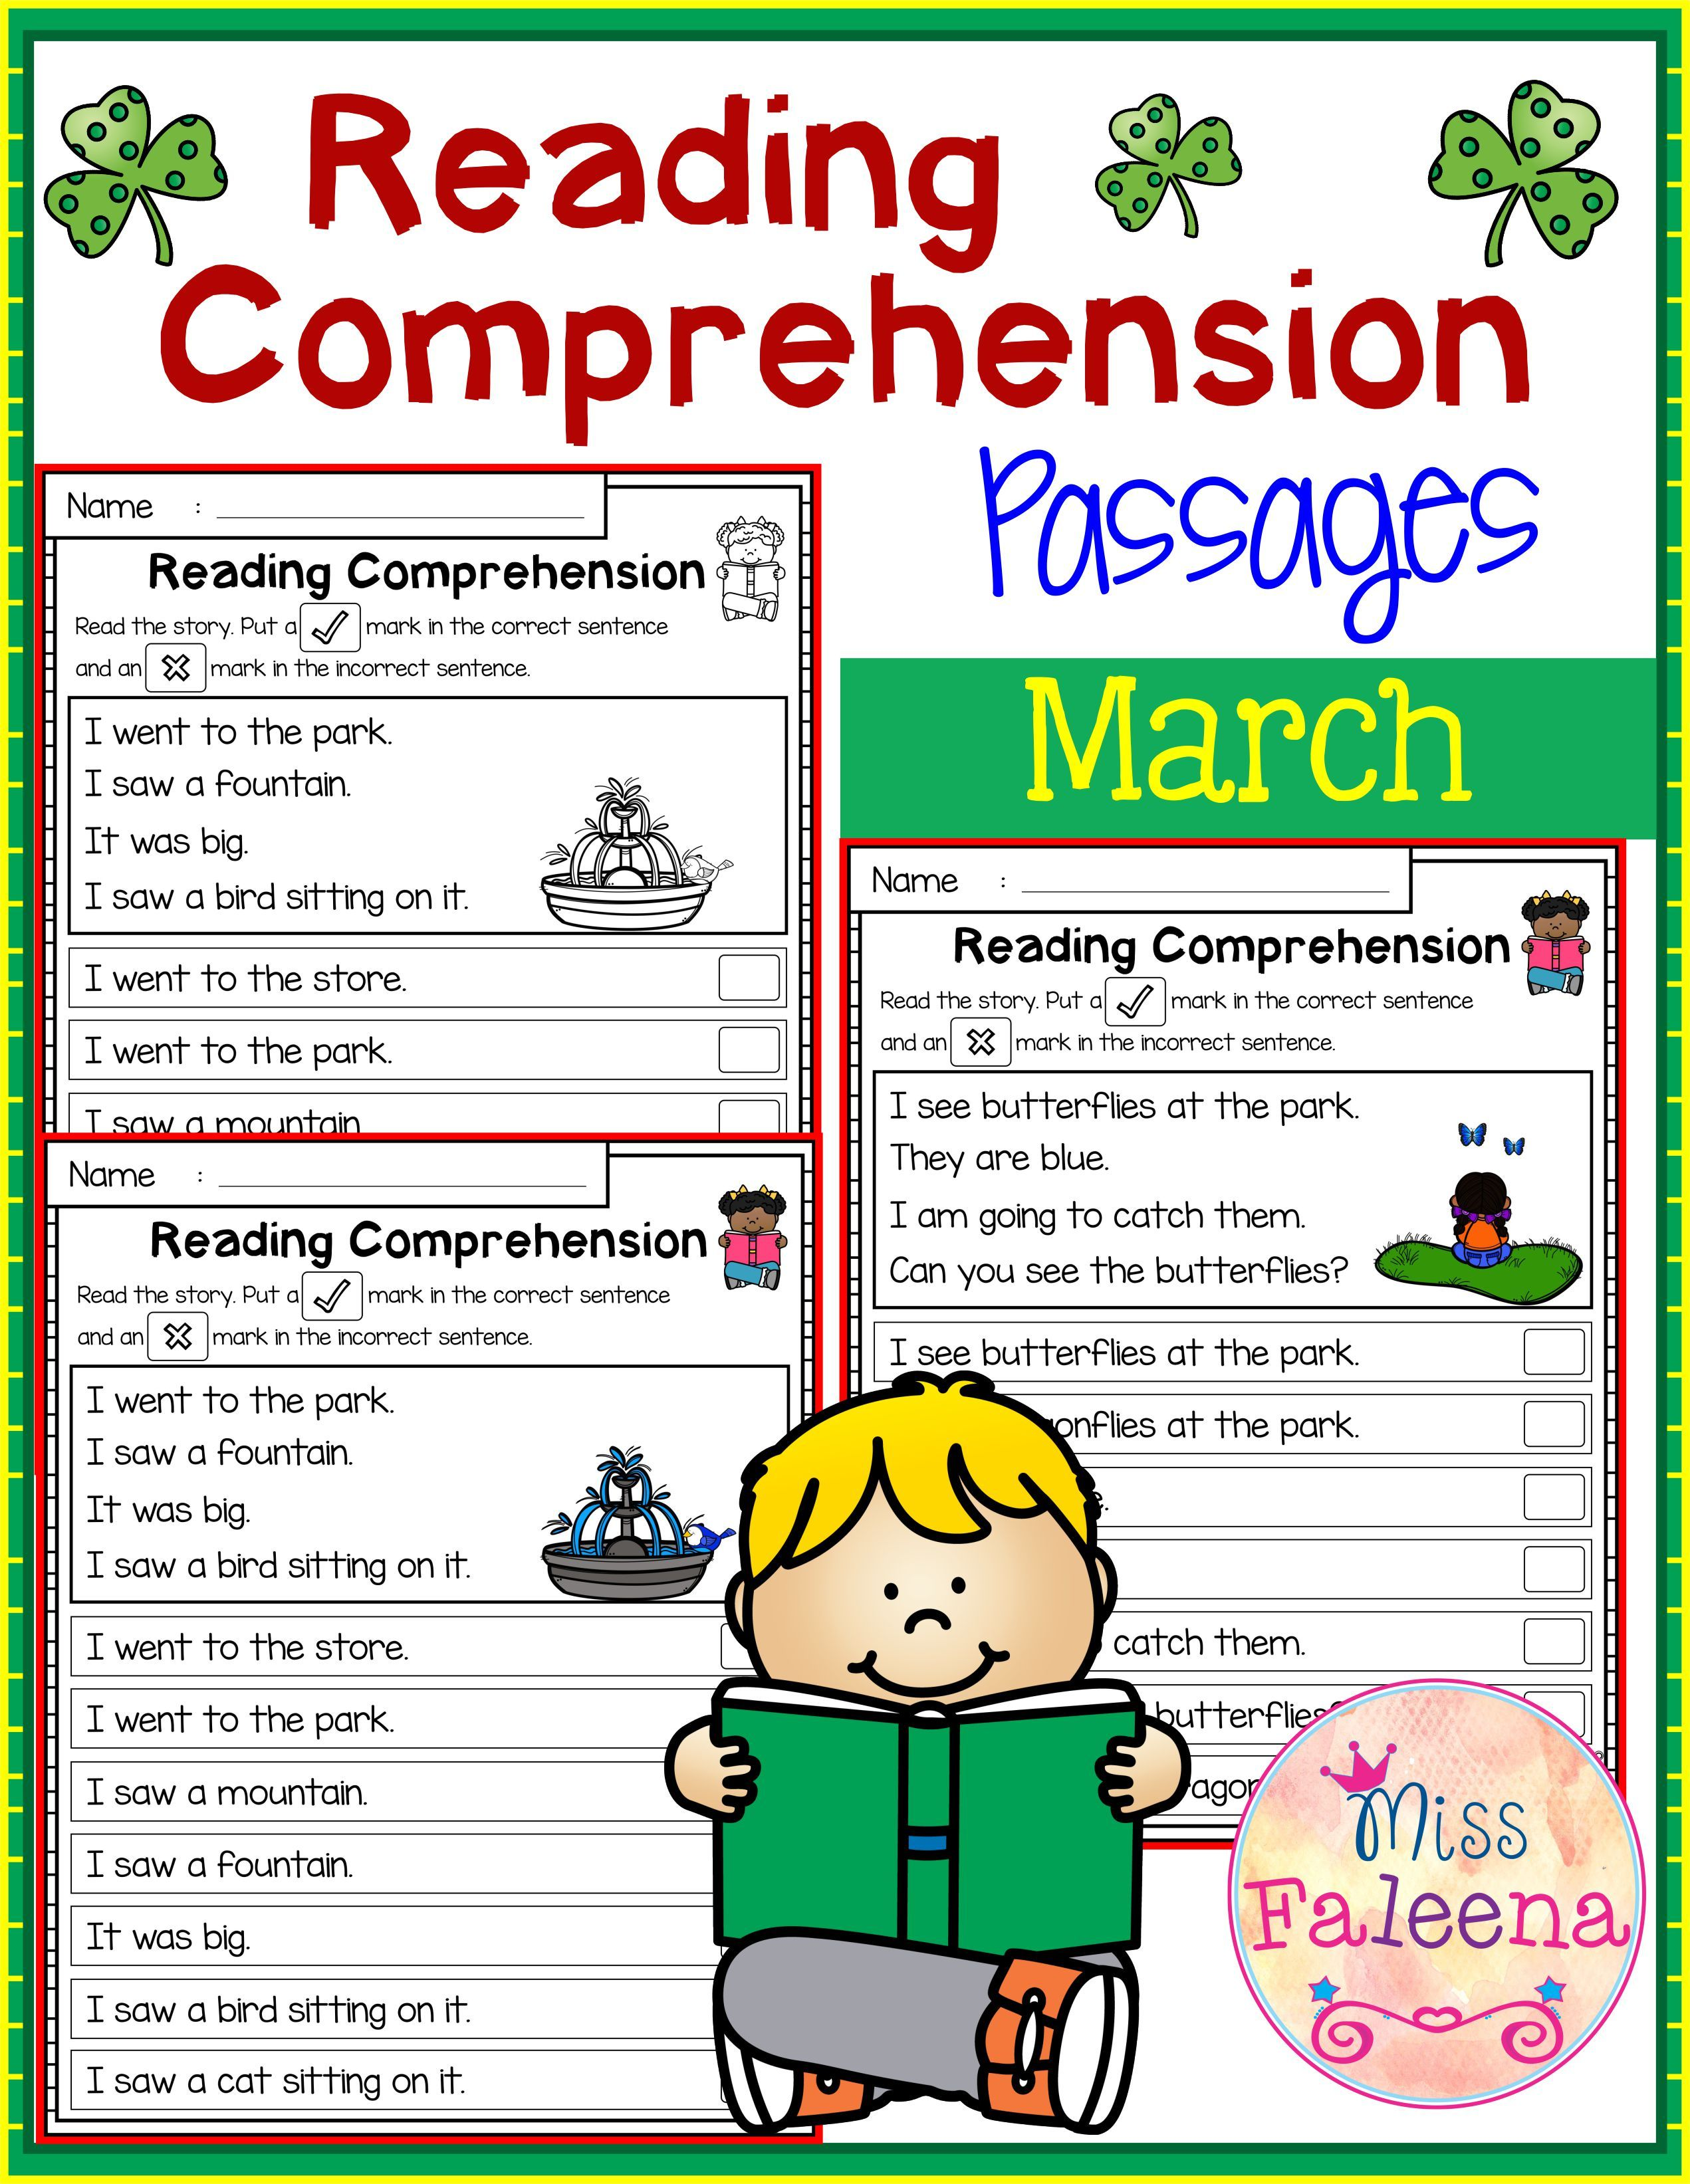 March Reading Comprehension Passages Is Suitable For Kindergarten Students Or Reading Comprehension Reading Comprehension Passages March Reading Comprehension [ 3286 x 2542 Pixel ]